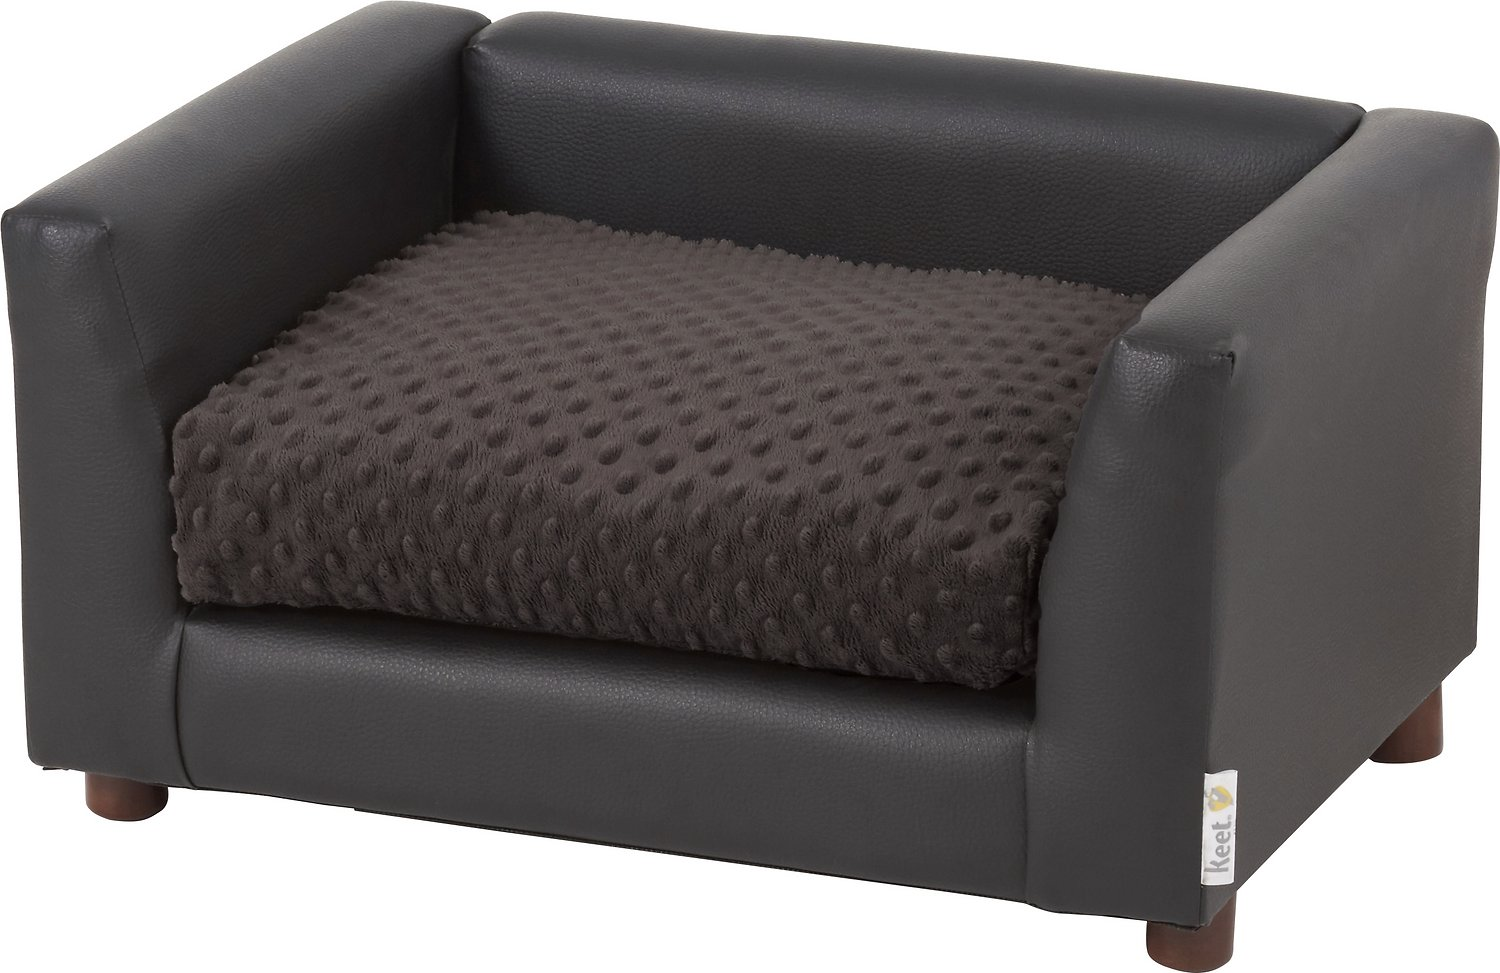 Keet Fluffly Deluxe Dog Bed Sofa, Chocolate, Small - Chewy.com